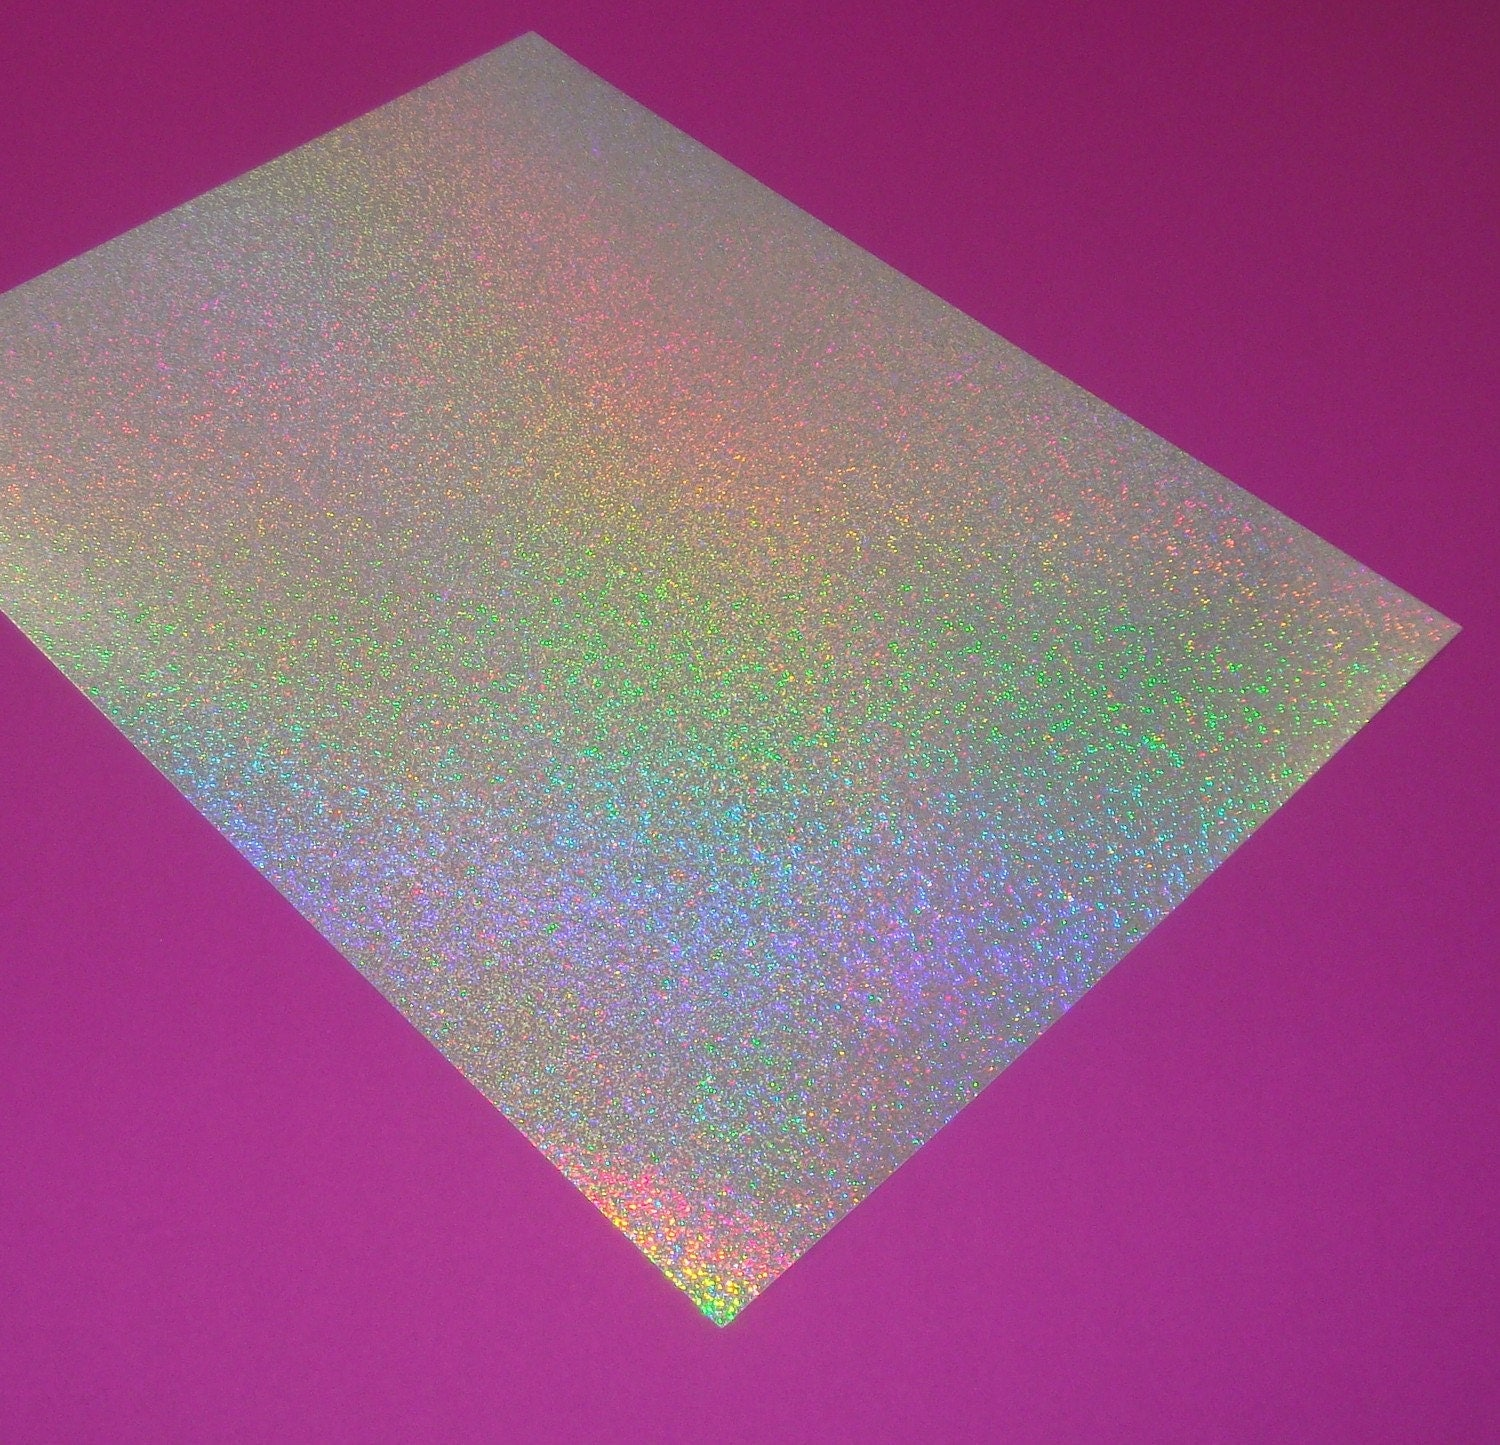 It is a picture of Sizzling Printable Glitter Paper